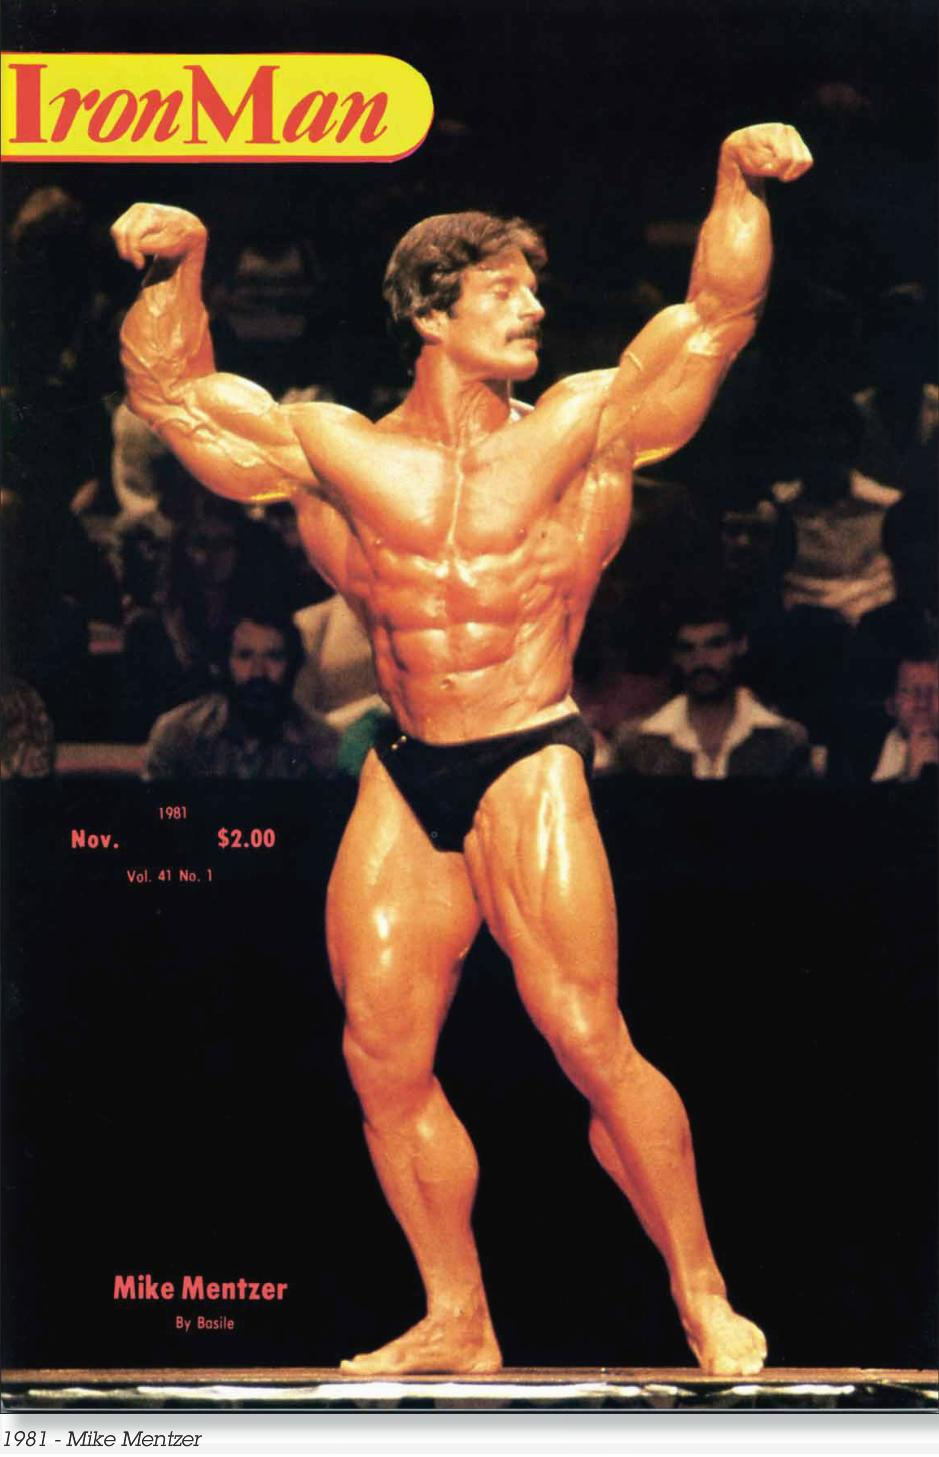 Mike Mentzer - High Quality Scans You May Not Have Seen Before!!!